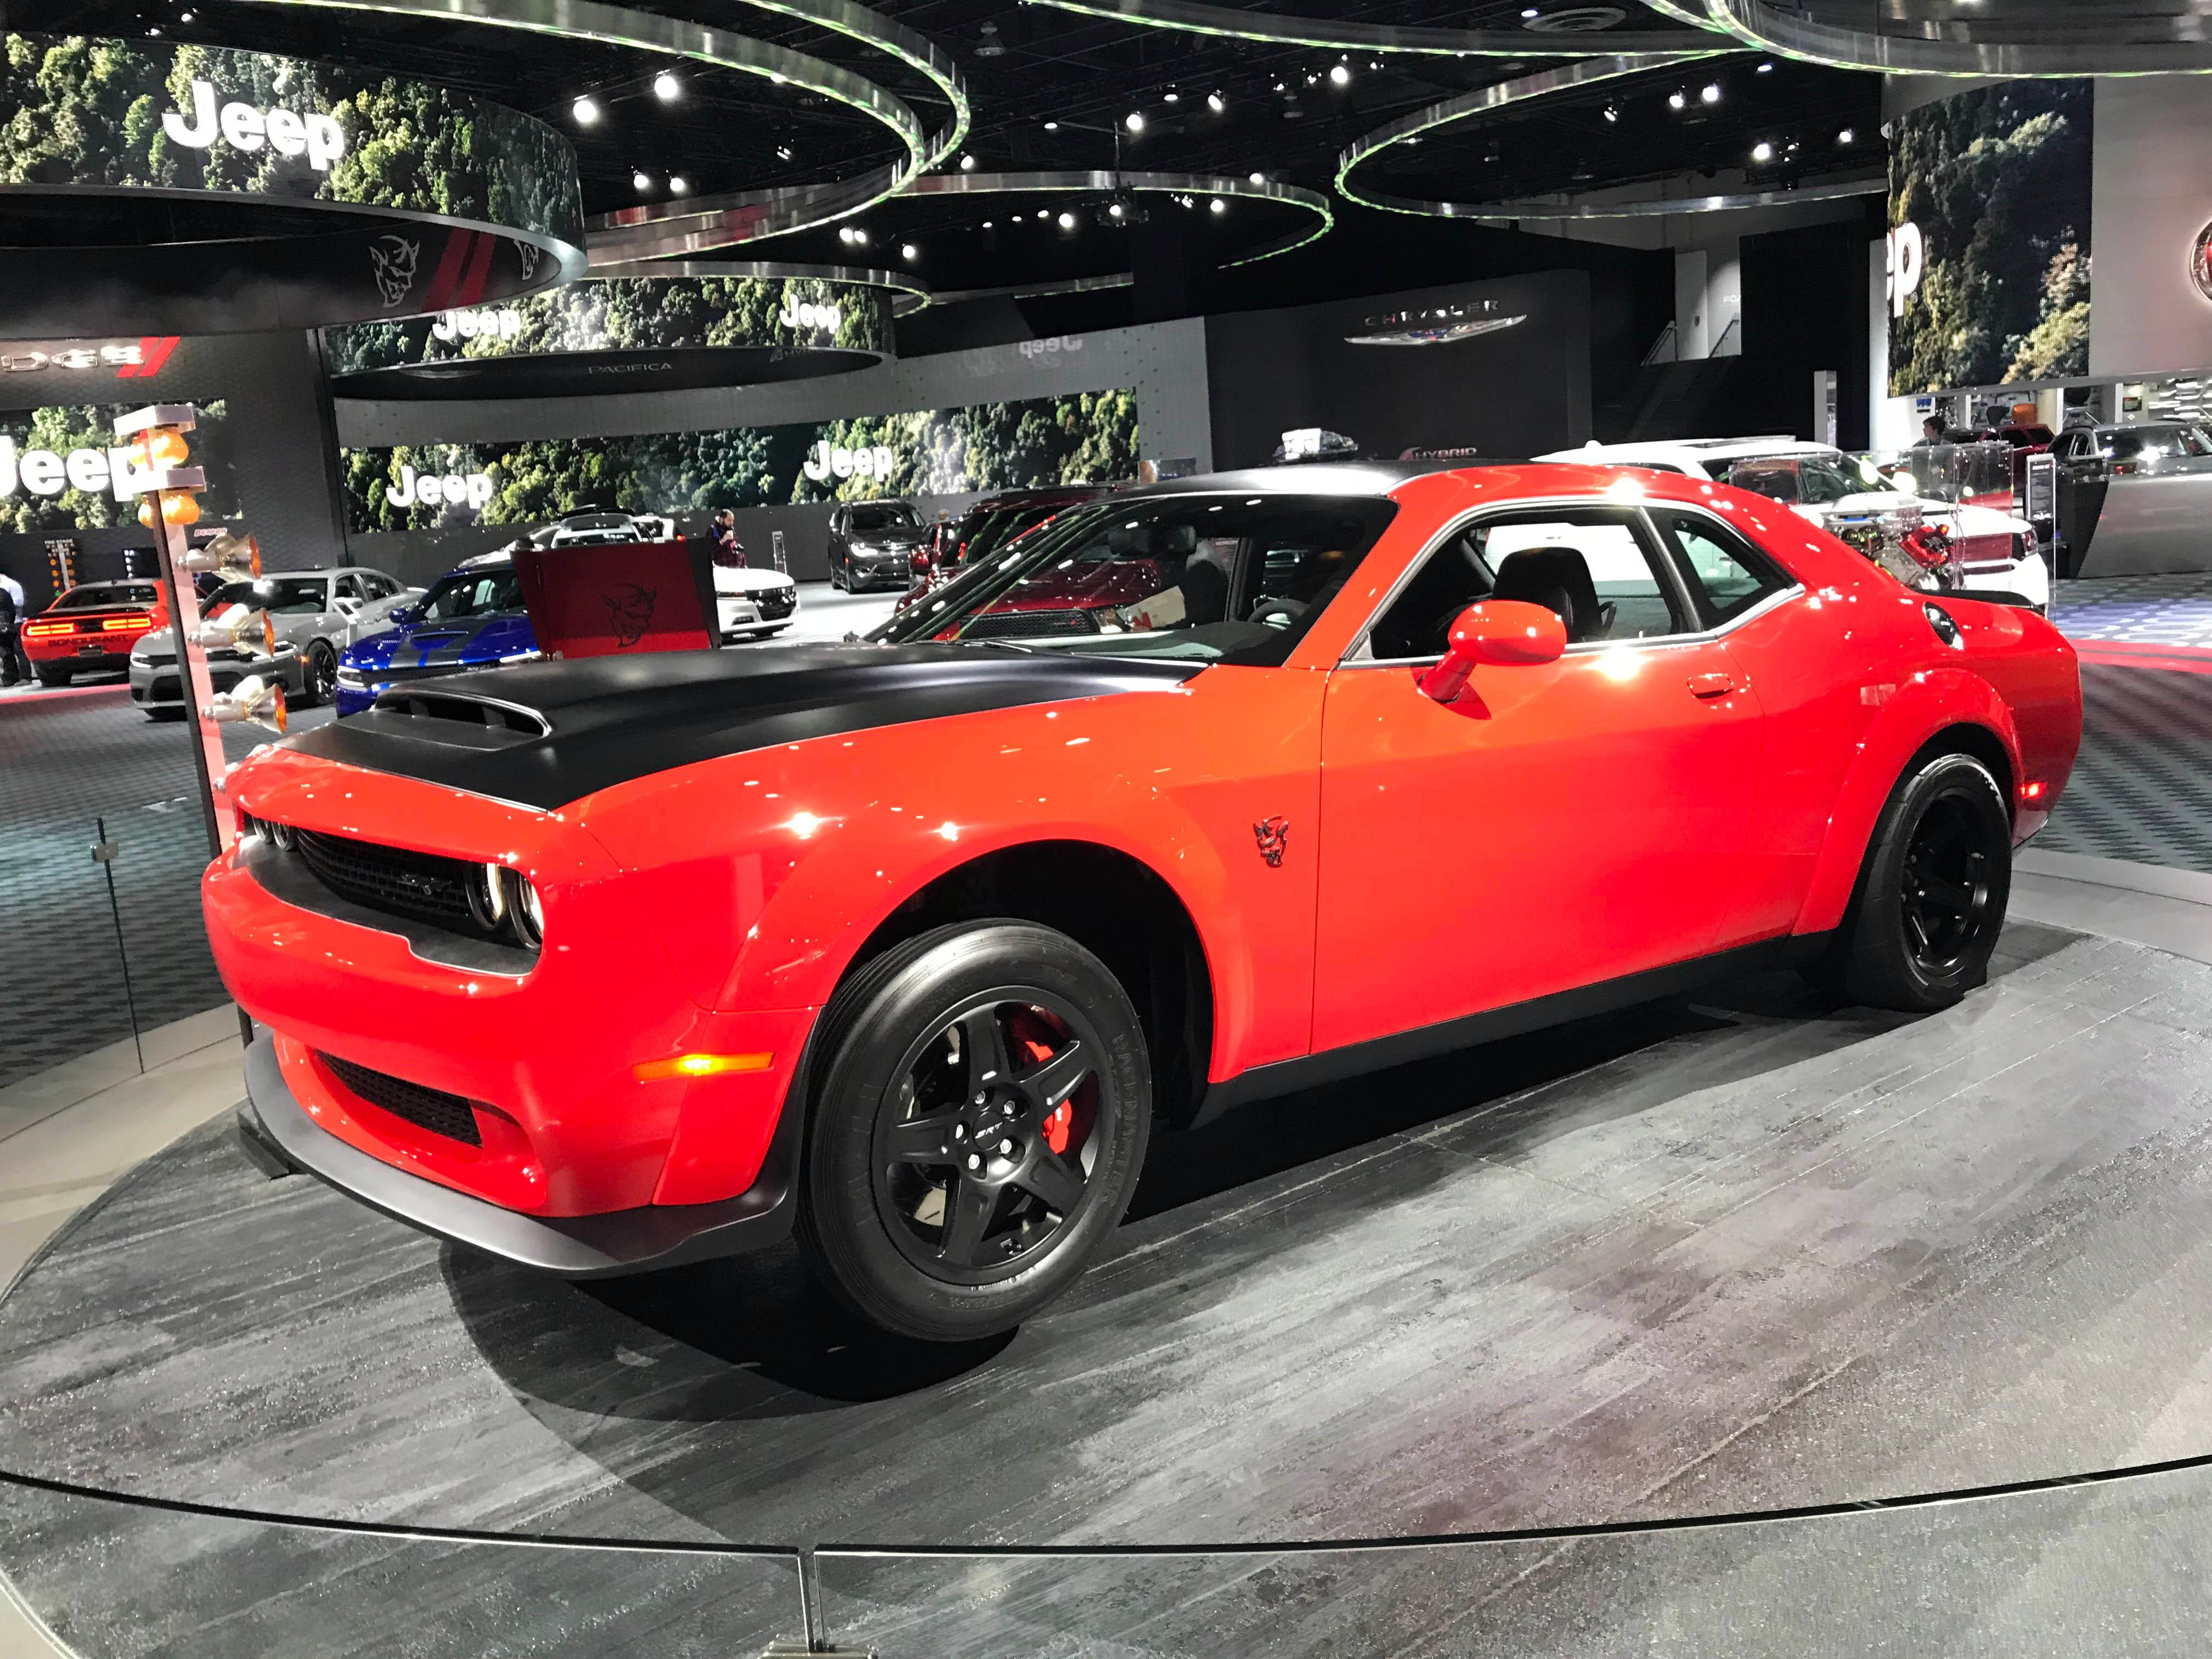 PHOTO GALLERY Cool Cars At The Detroit Auto Show KVCWtv - Car show milwaukee 2018